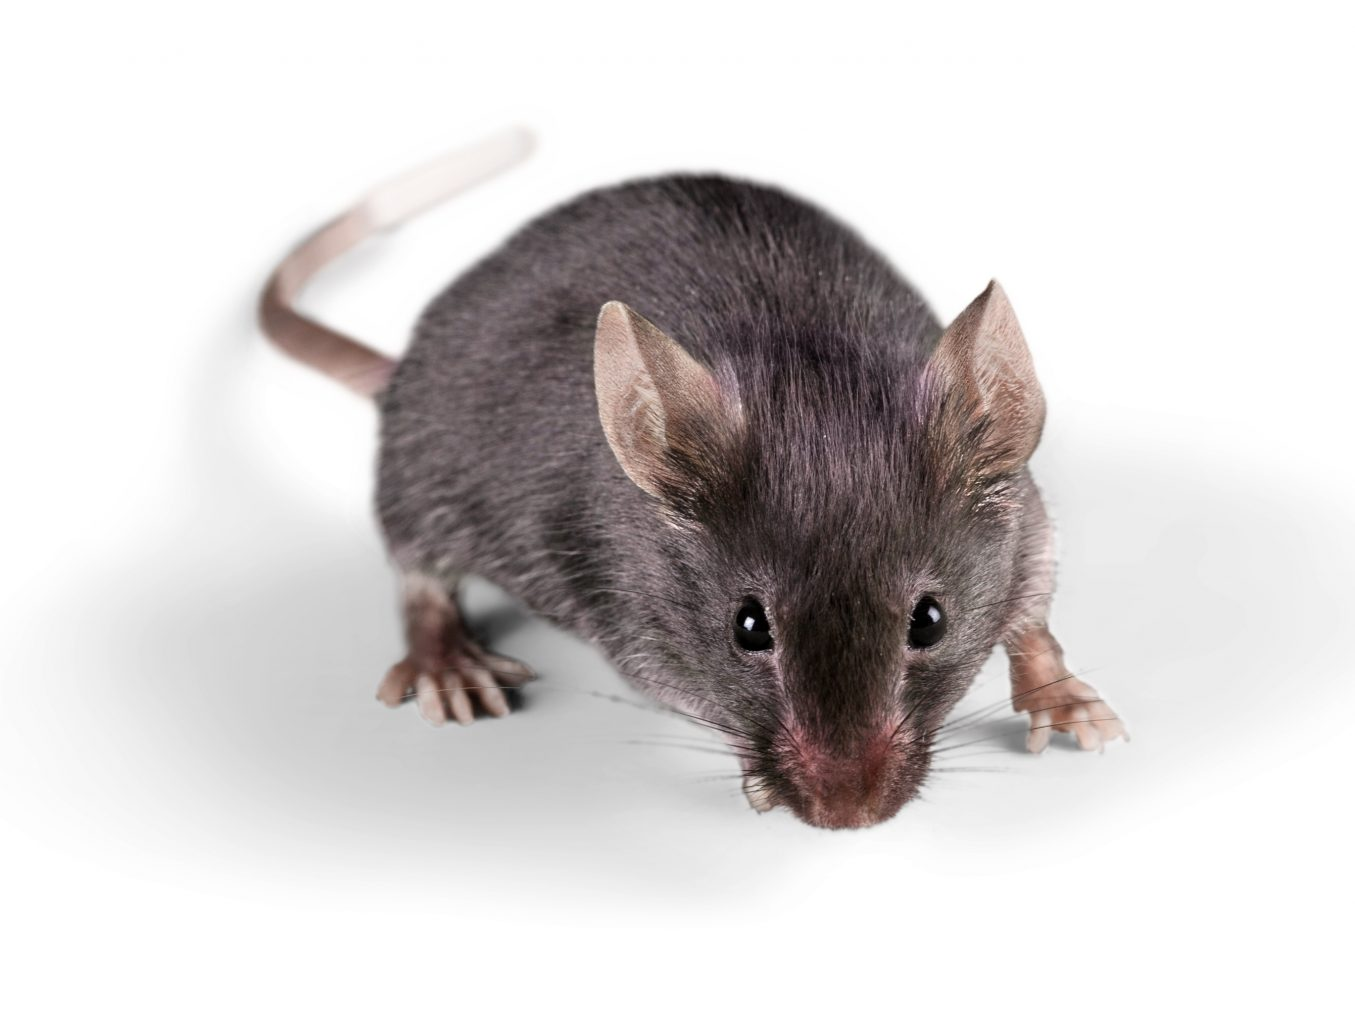 Rodent Extermination In The Omaha Metro